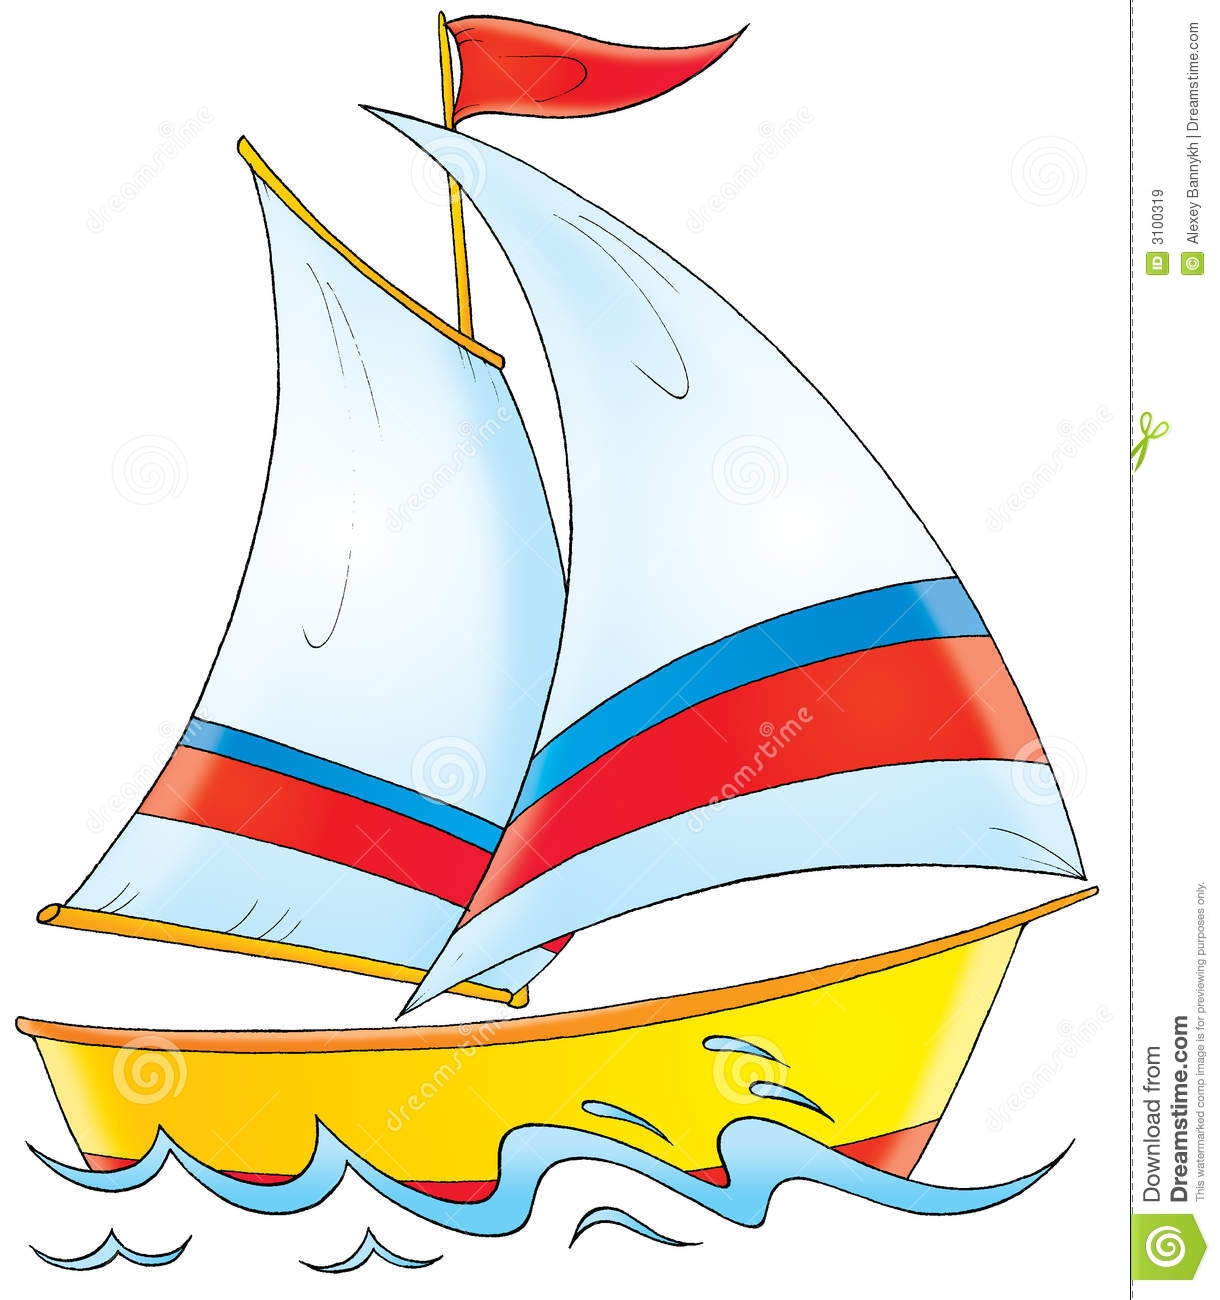 Boats clipart yacht. Awesome gallery digital collection